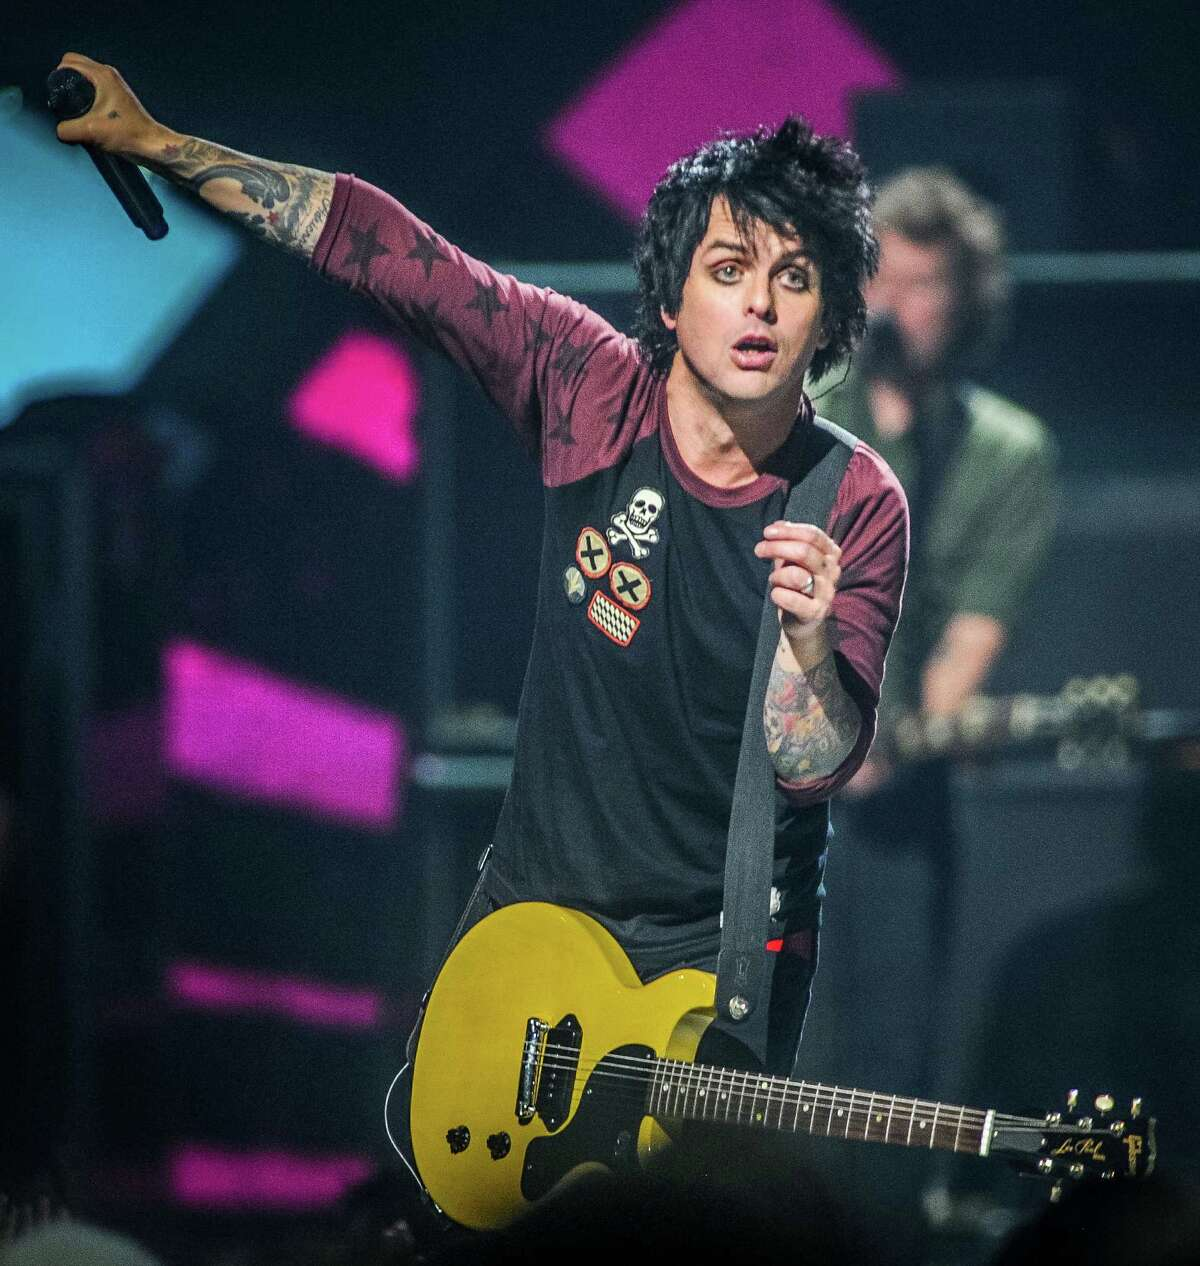 FILE - This Sept. 21, 2012 file photo shows Billie Joe Armstrong of Green Day on stage at the iHeart Radio Music Festival at the MGM Grand Arena in Las Vegas. The Grammy-winning punk band announced new tour dates, Monday, Dec. 31, 2012. Green Day's tour is scheduled to begin in March 28, 2013, in Chicago. (Photo by Eric Reed/Invision/AP, file)